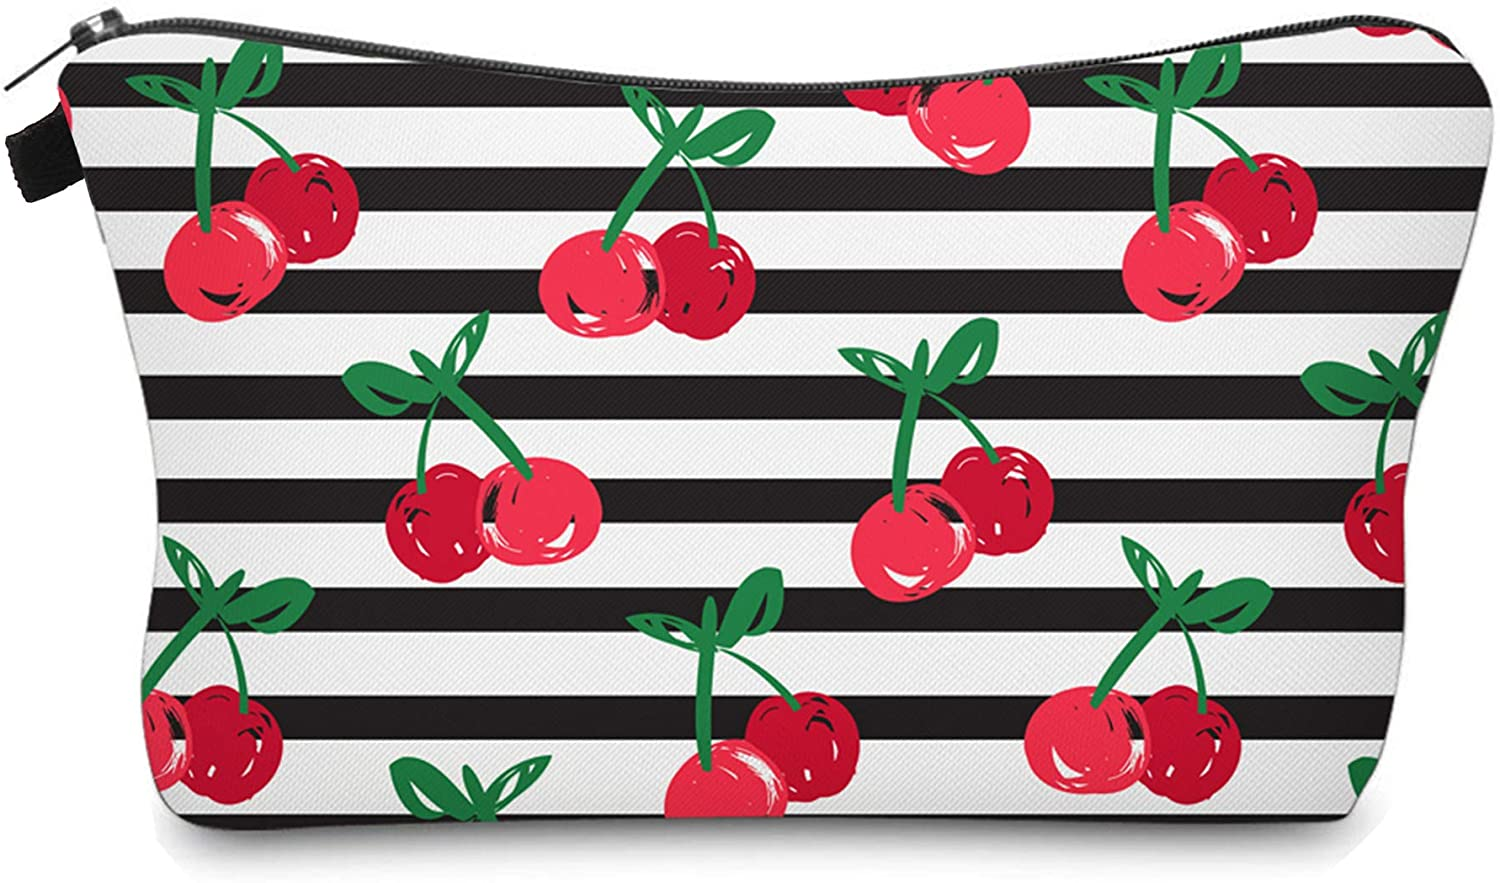 Cute Travel Makeup Bag Cosmetic Bag Small Pouch Gift for Women (Stripes Cherry)